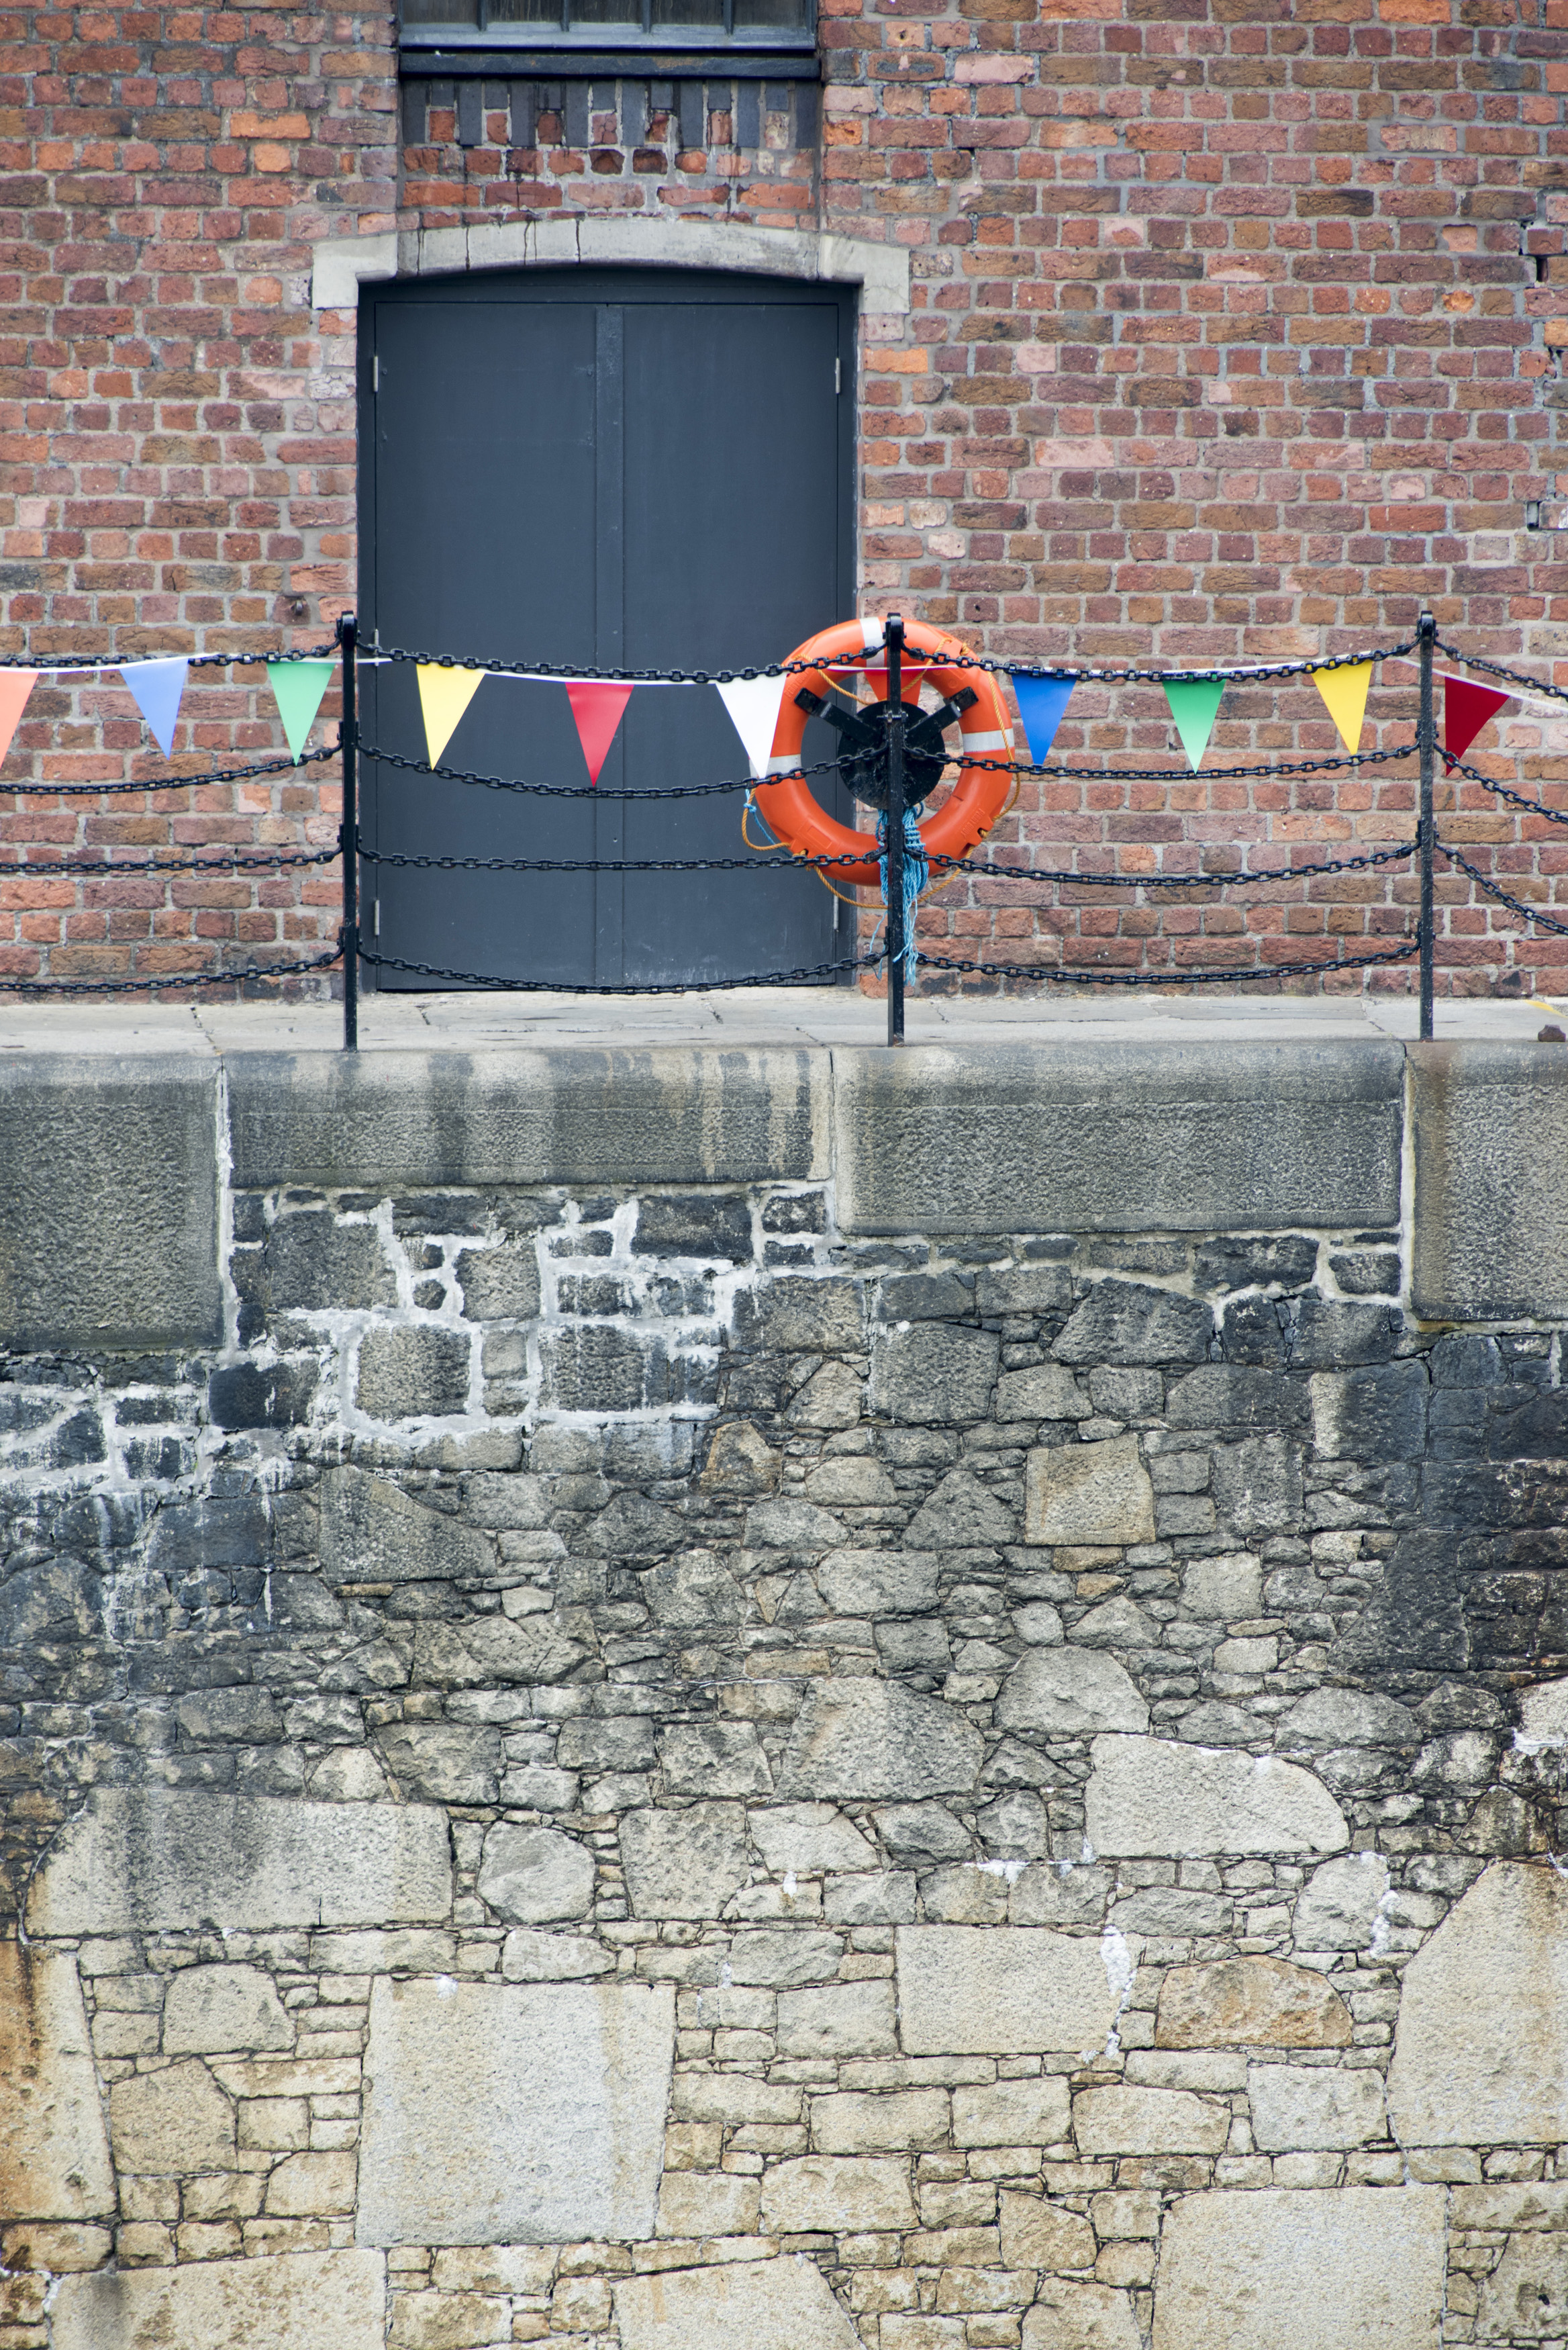 Orange life preserver on iron pole and chain railing at Liverpool Albert Dock with locked black doors surround by brick wall